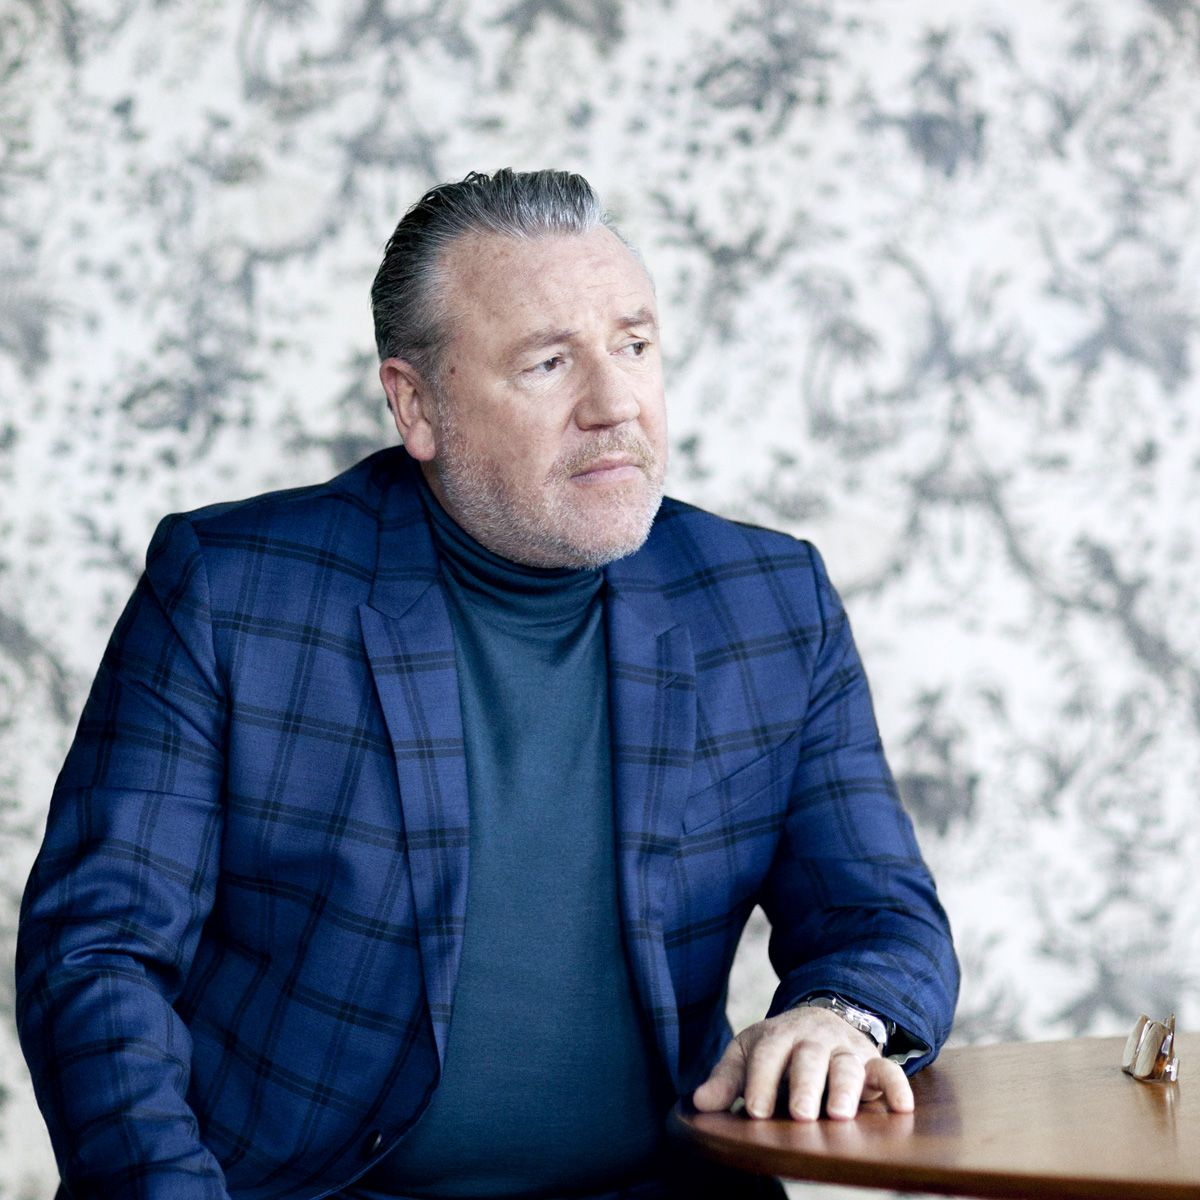 Communication on this topic: Marina Massironi, ray-winstone-born-1957/